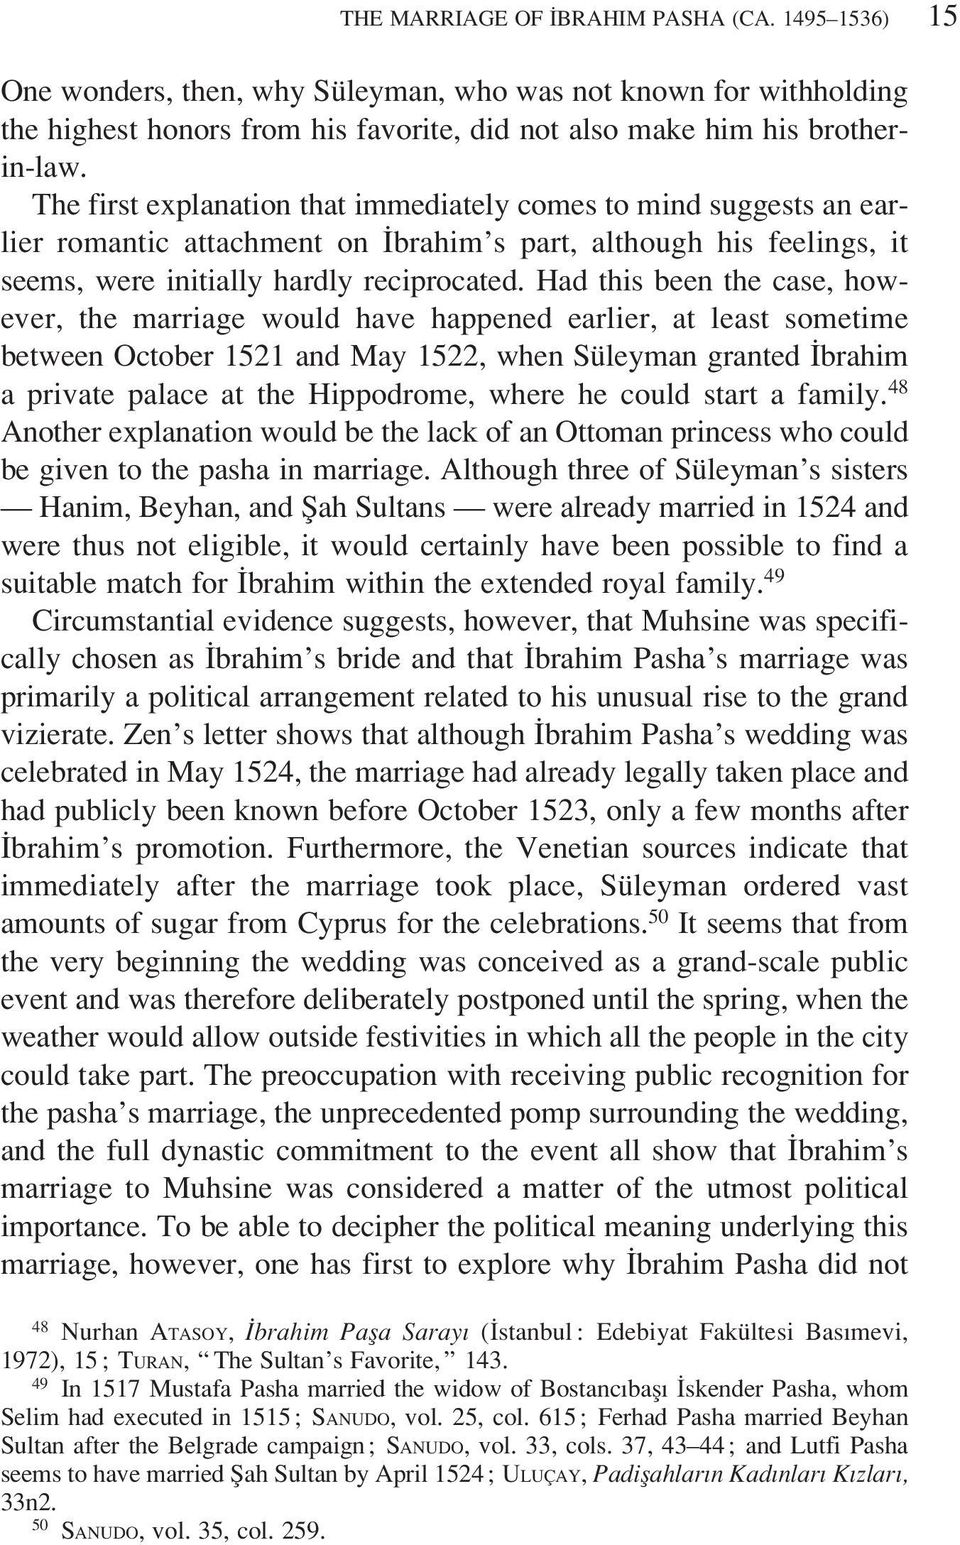 Had this been the case, however, the marriage would have happened earlier, at least sometime between October 1521 and May 1522, when Süleyman granted Ibrahim a private palace at the Hippodrome, where